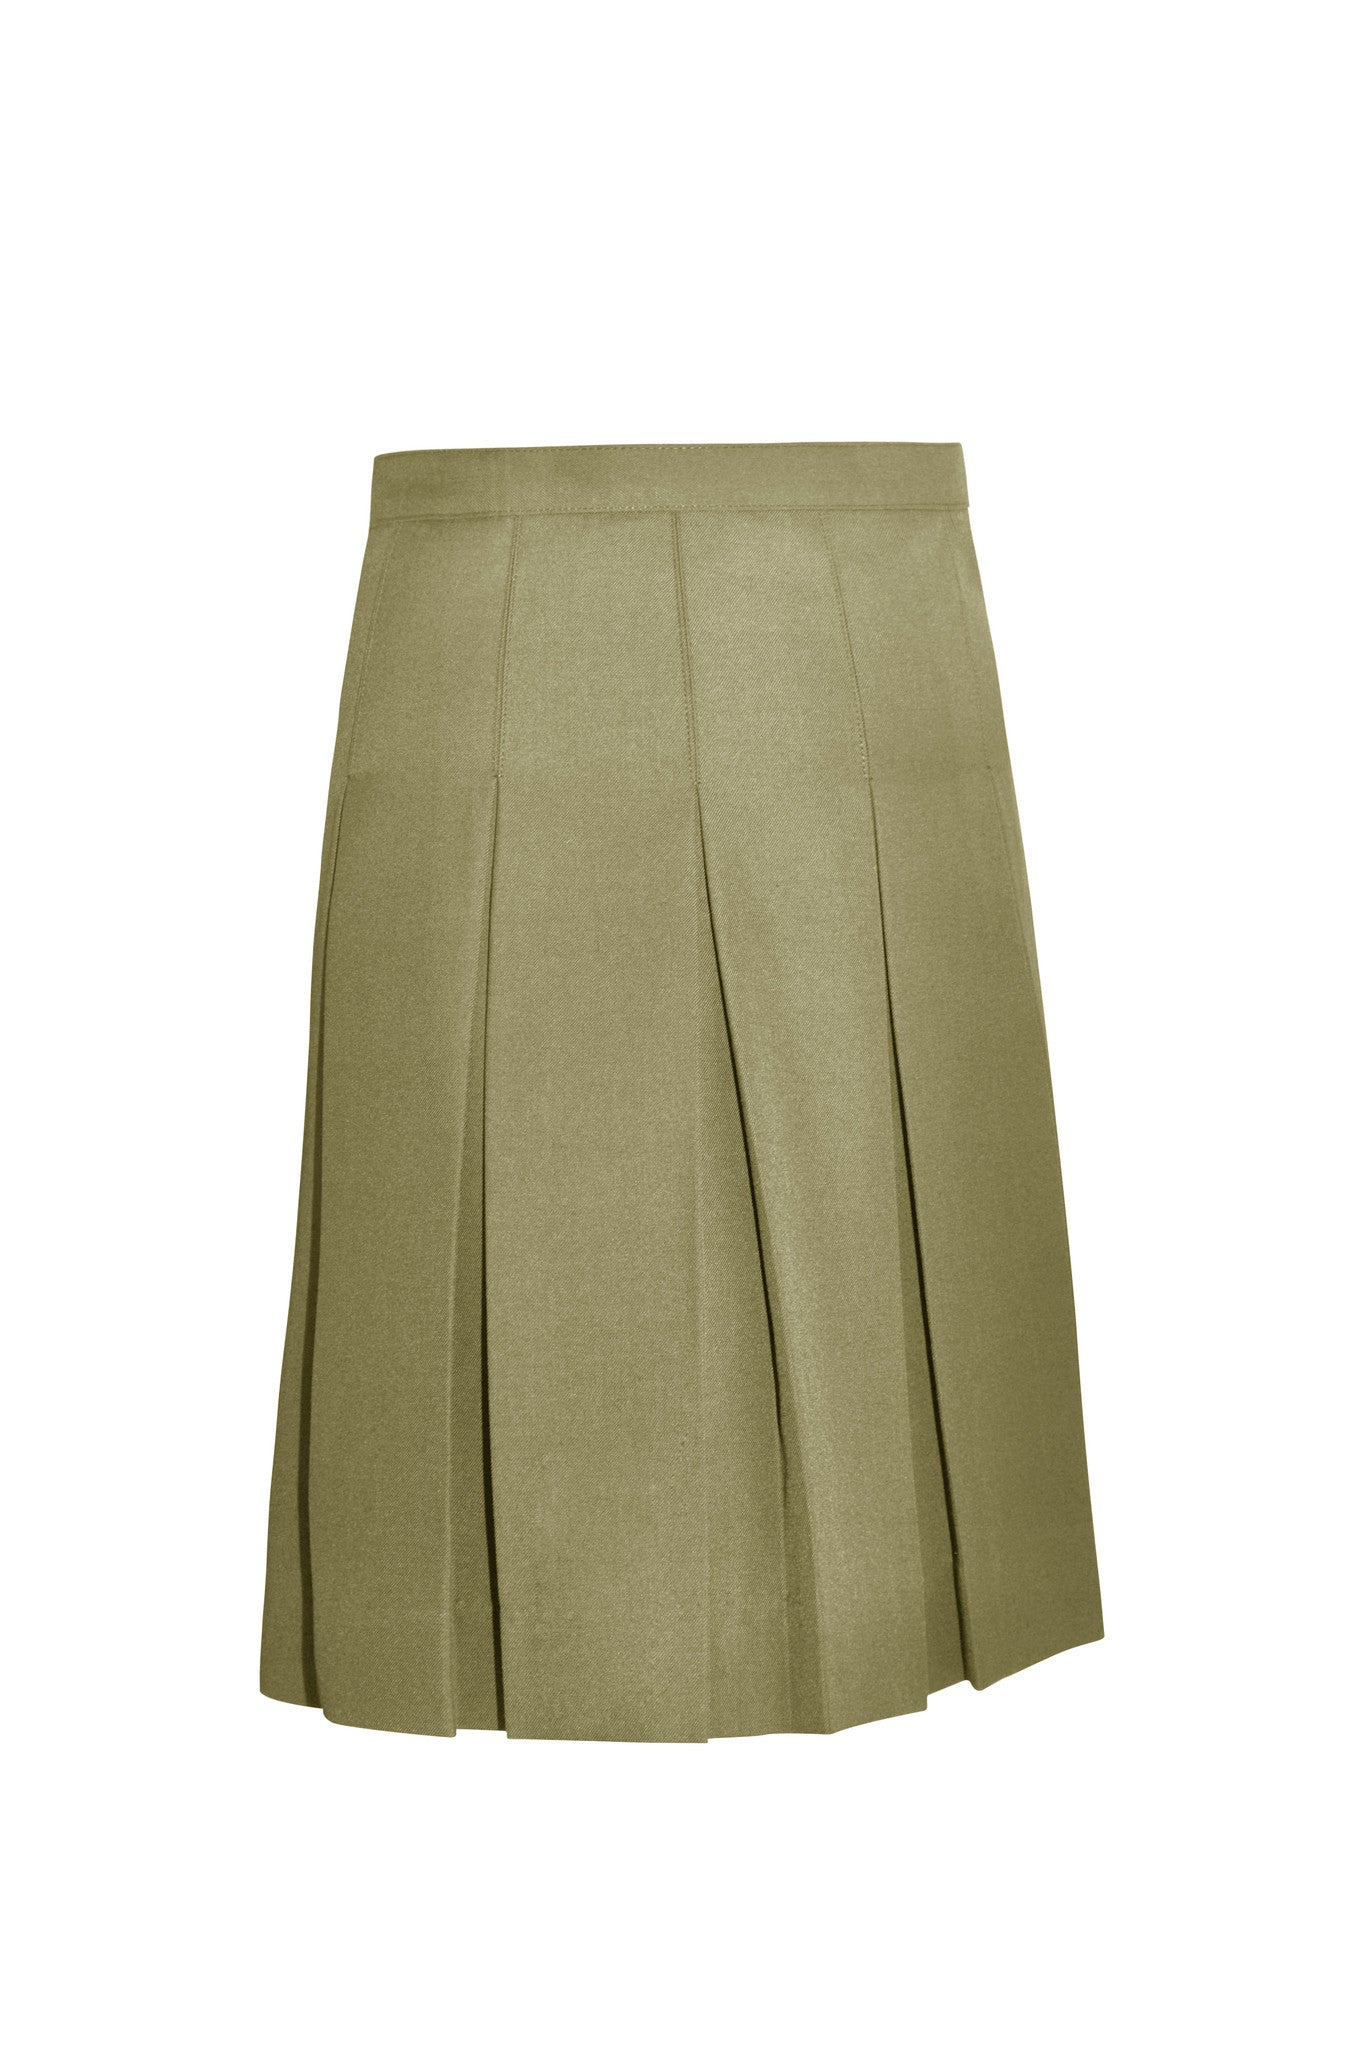 Girl's Pleated Twill Skirt - Half Size